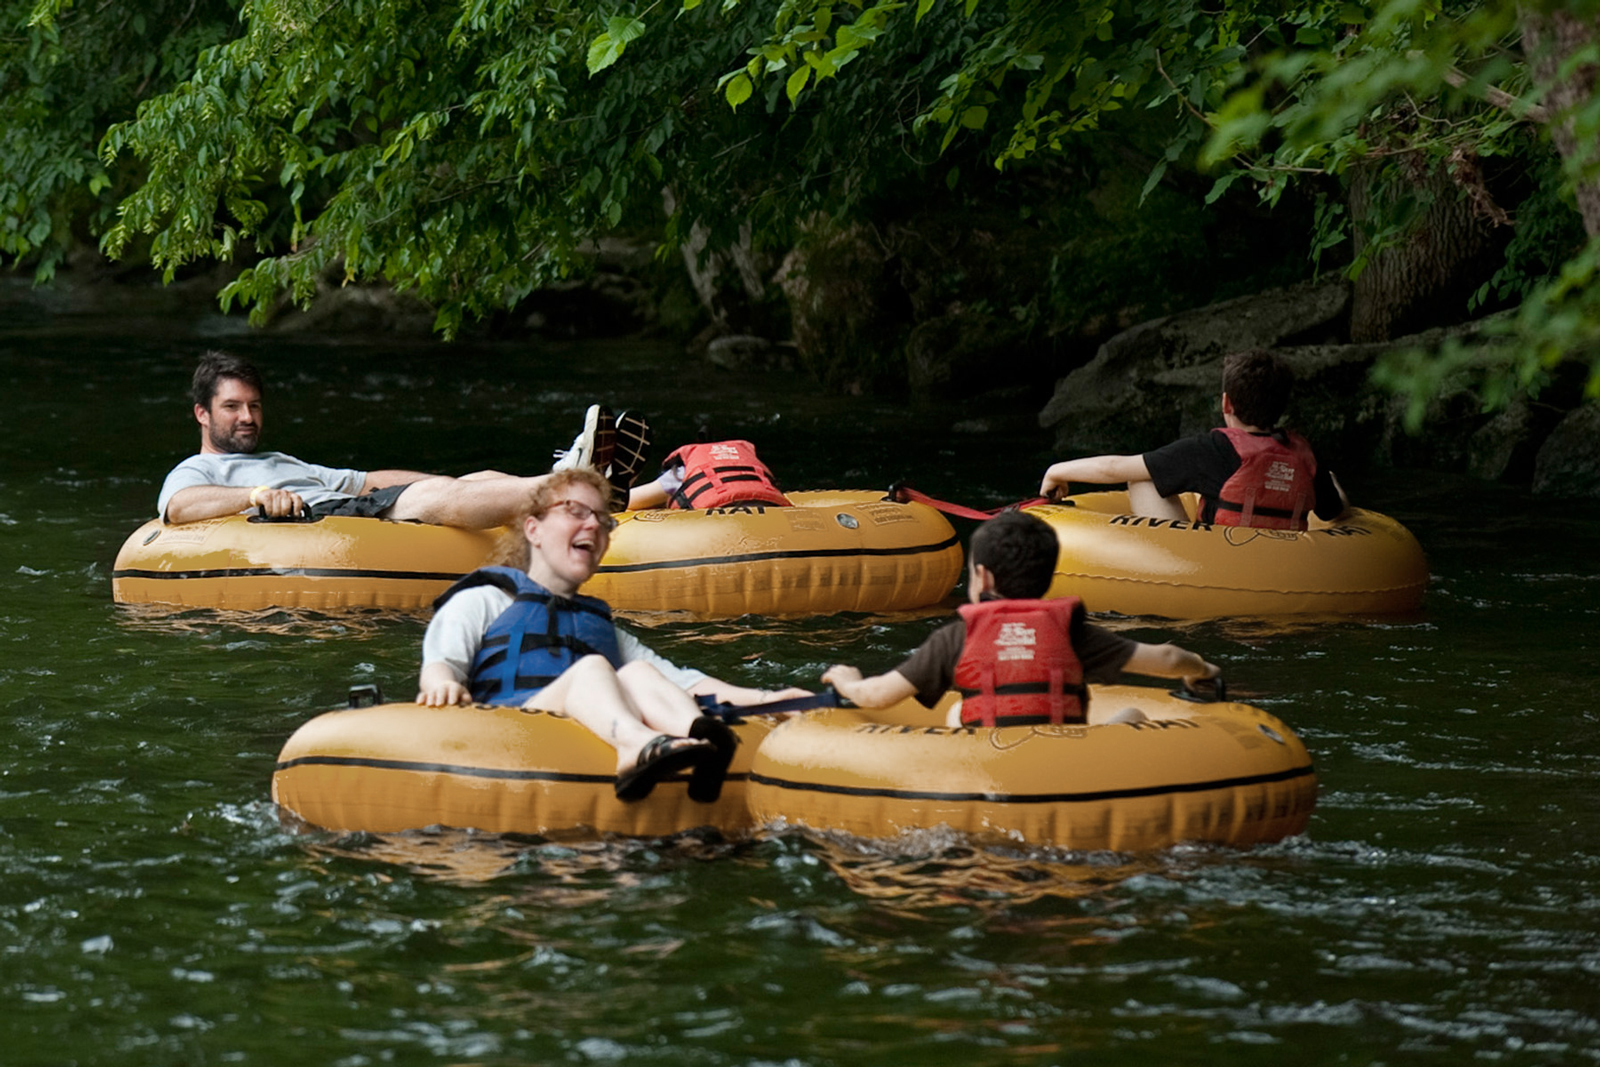 A family tubing down a river in Townsend, TN.